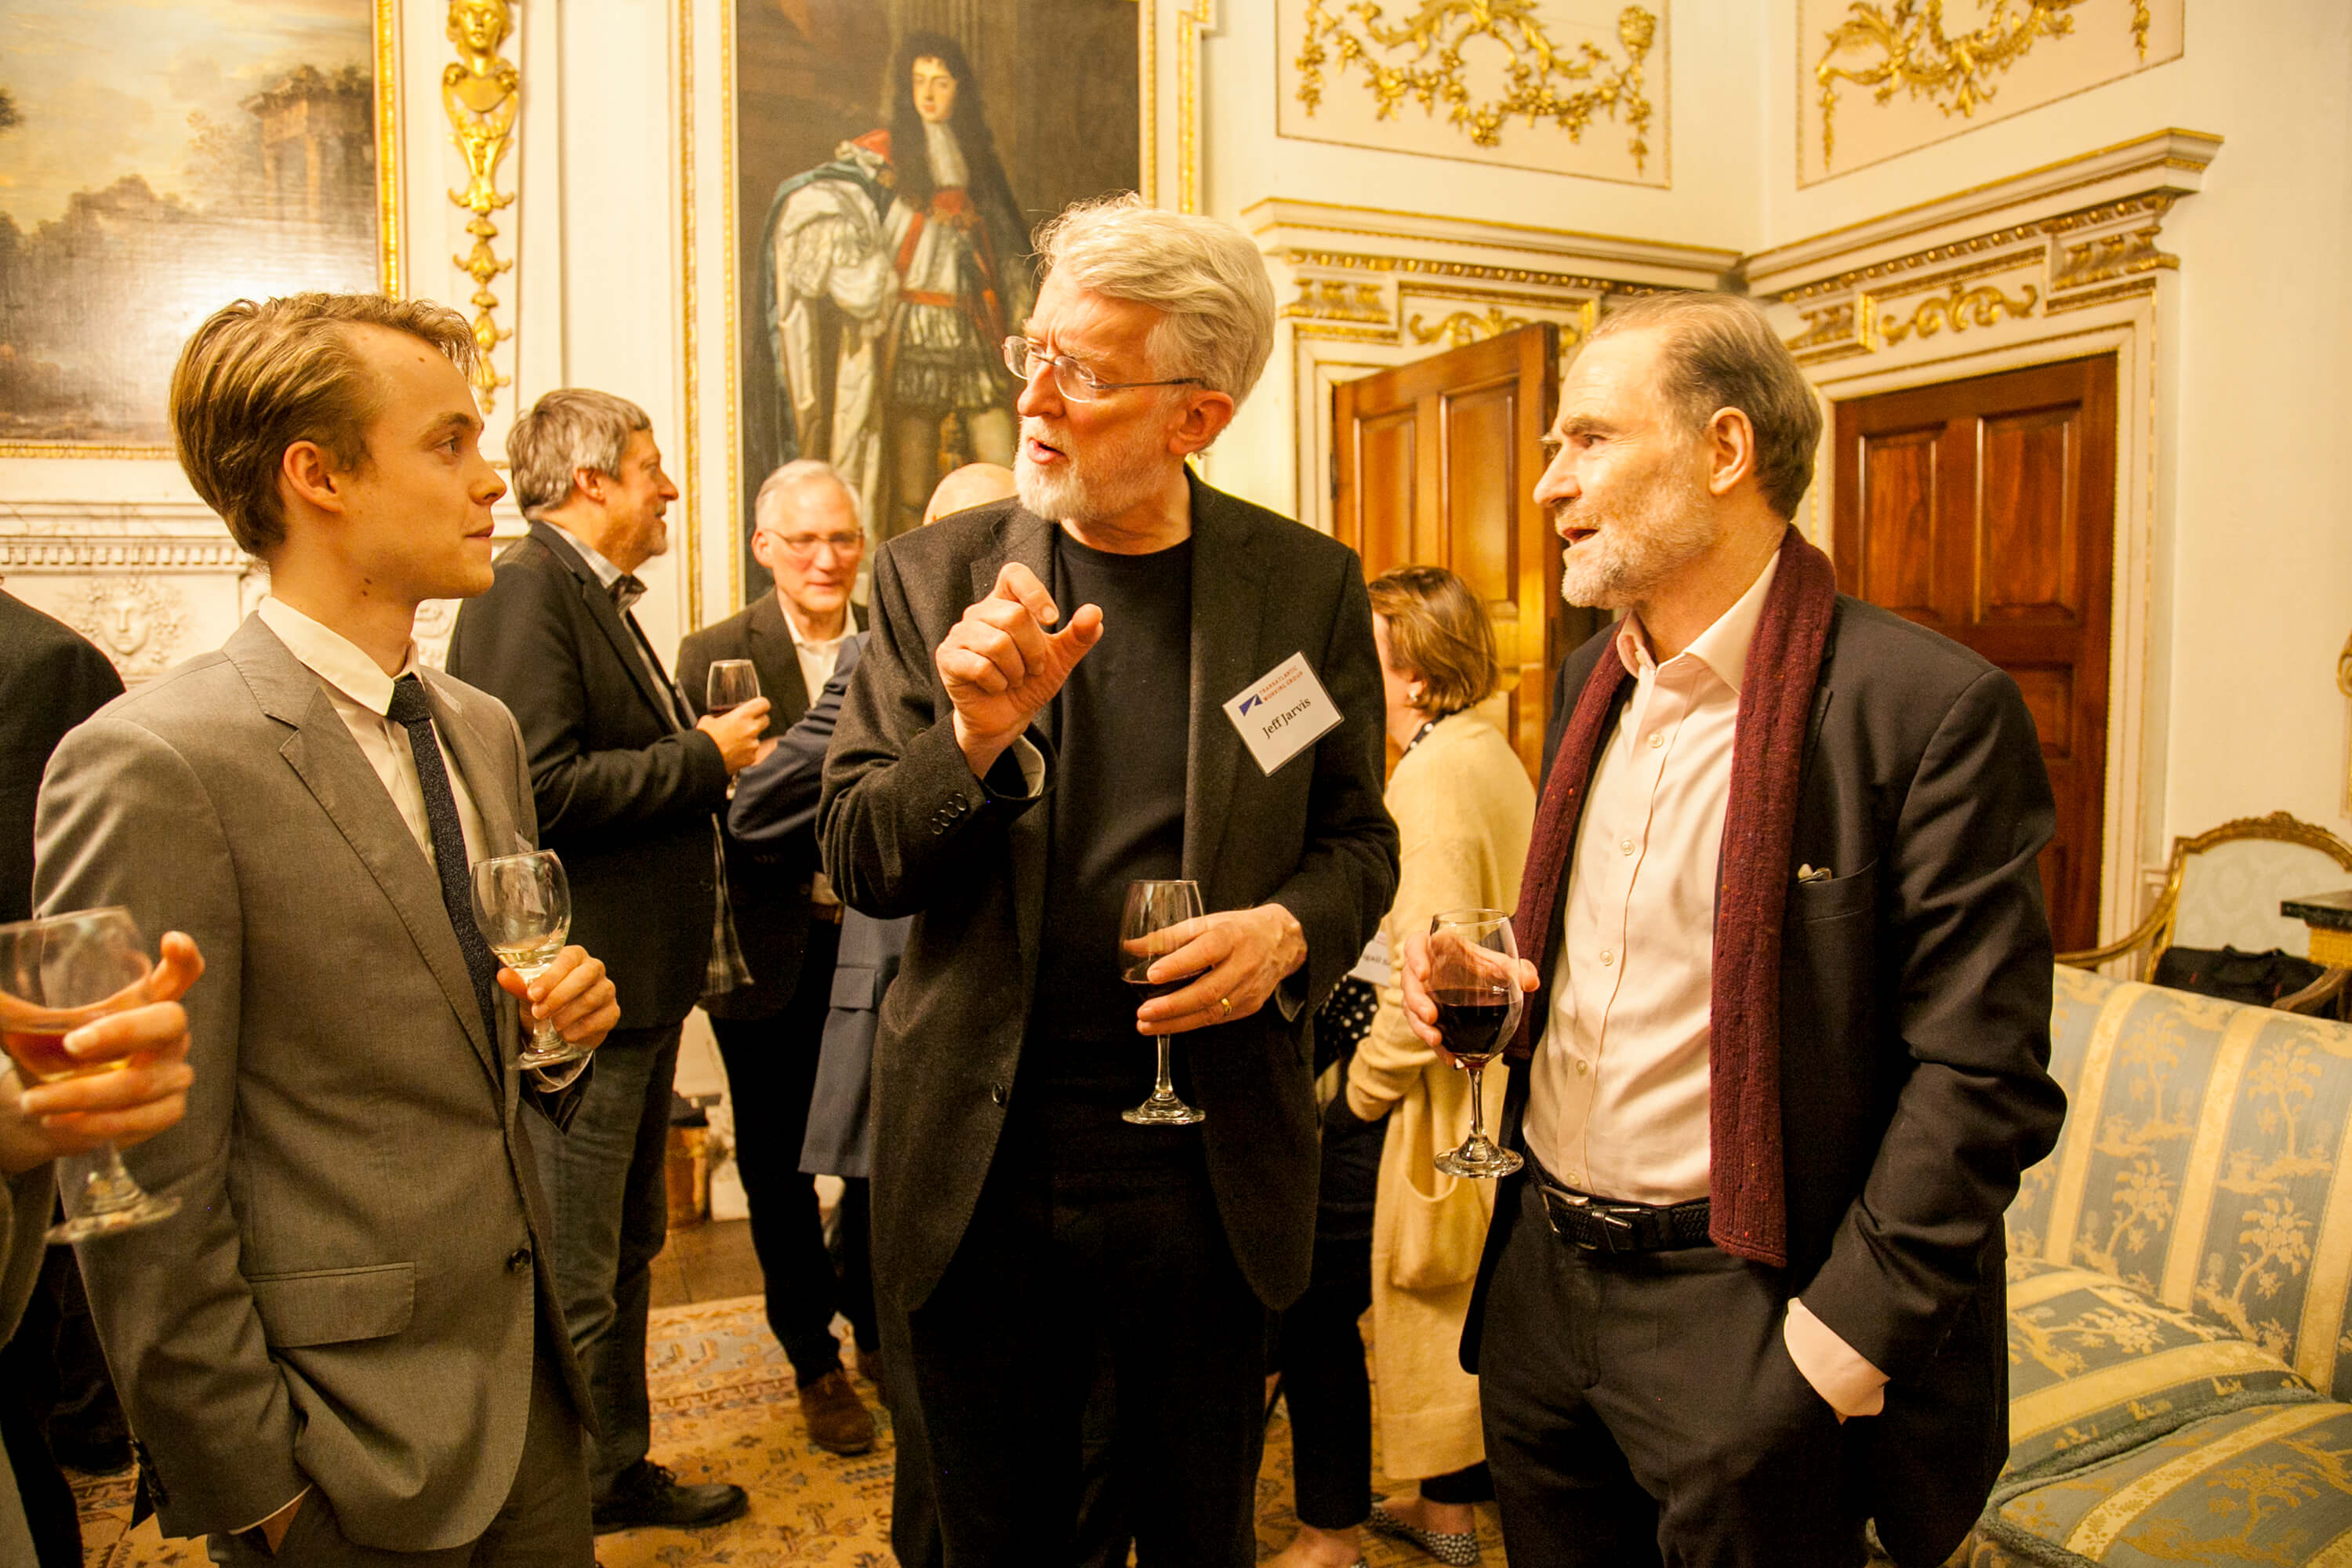 Paddy Leerssen, Jeff Jarvis, and Timothy Garton Ash. Credit: Silver Apples Photography. Transatlantic Working Group.